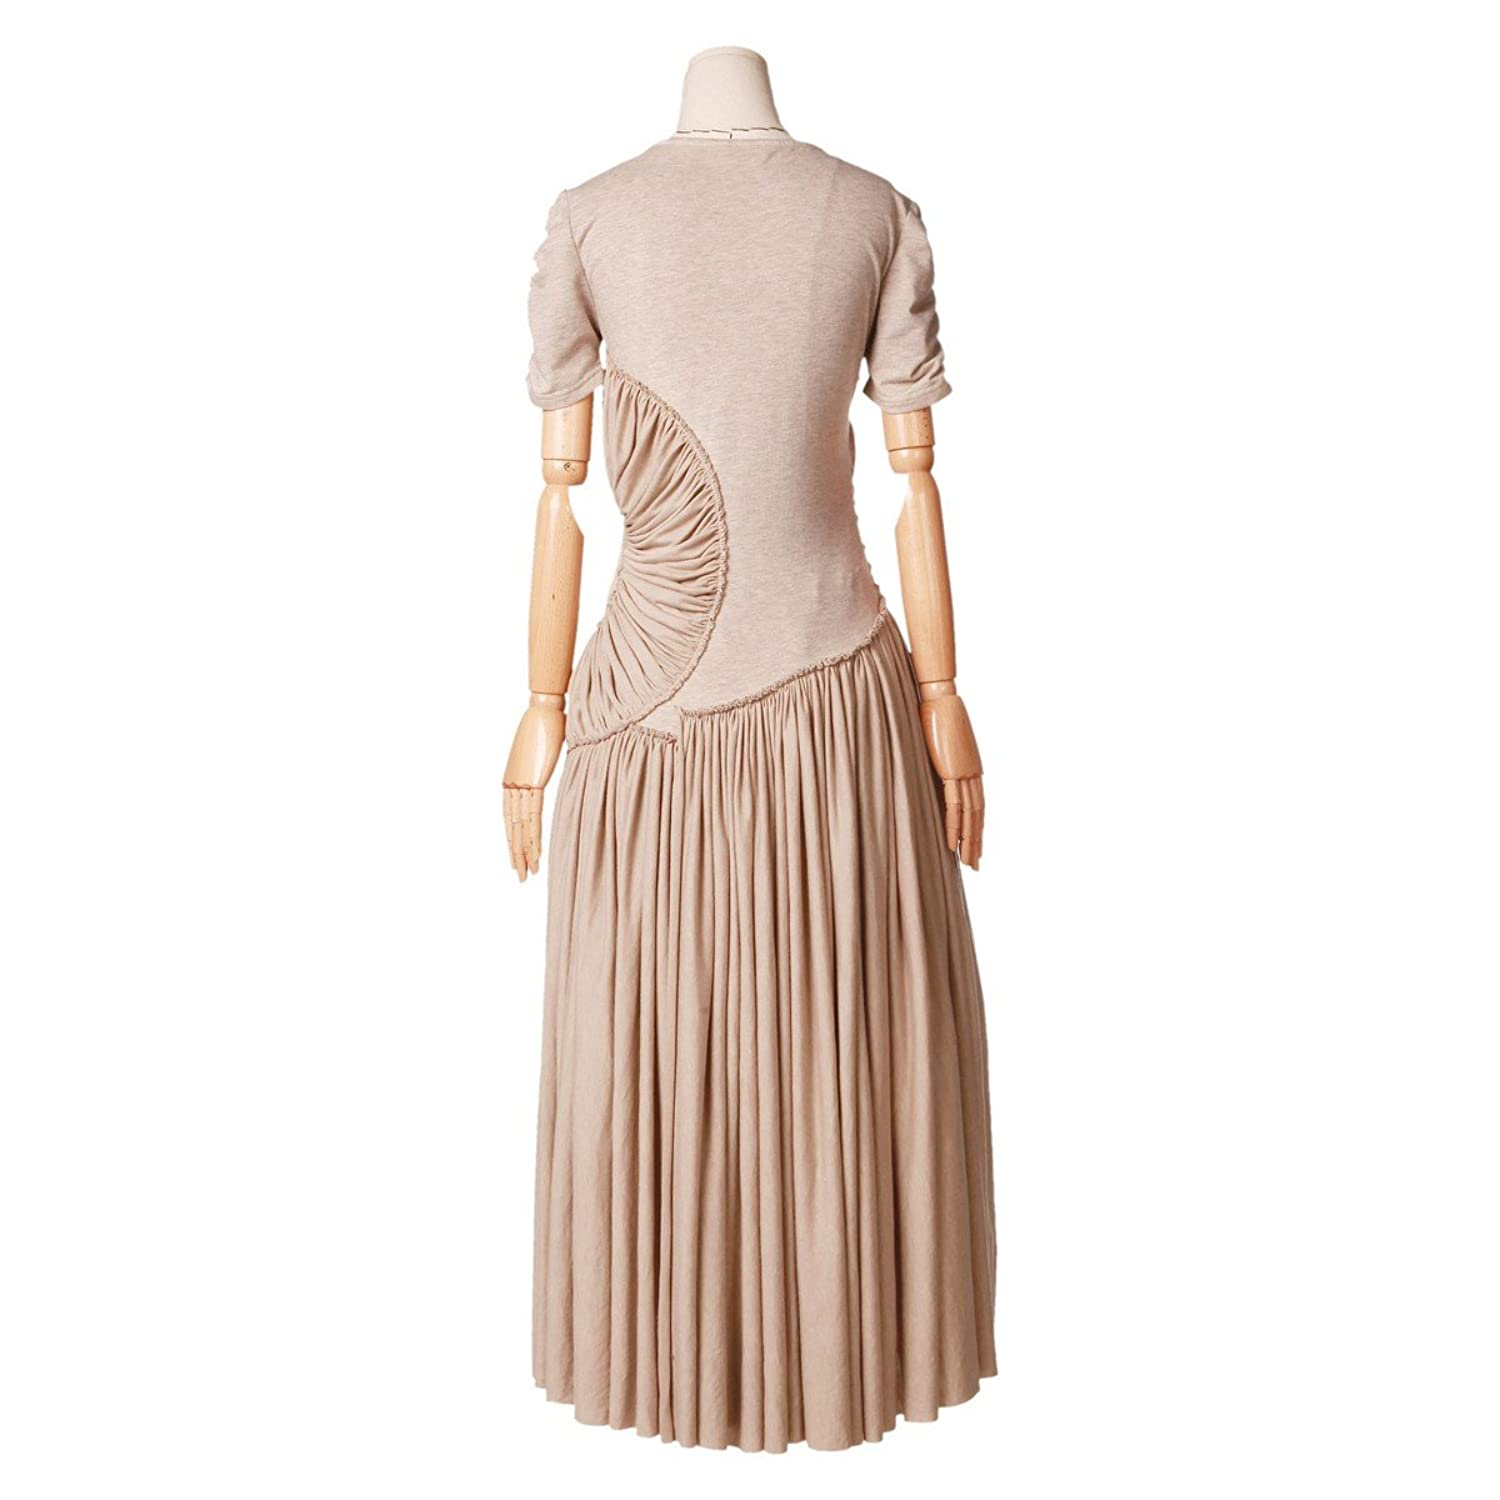 Artka Women's Ancient Greece Free Draping Pleats Waist Forepart Dress ZA10141X